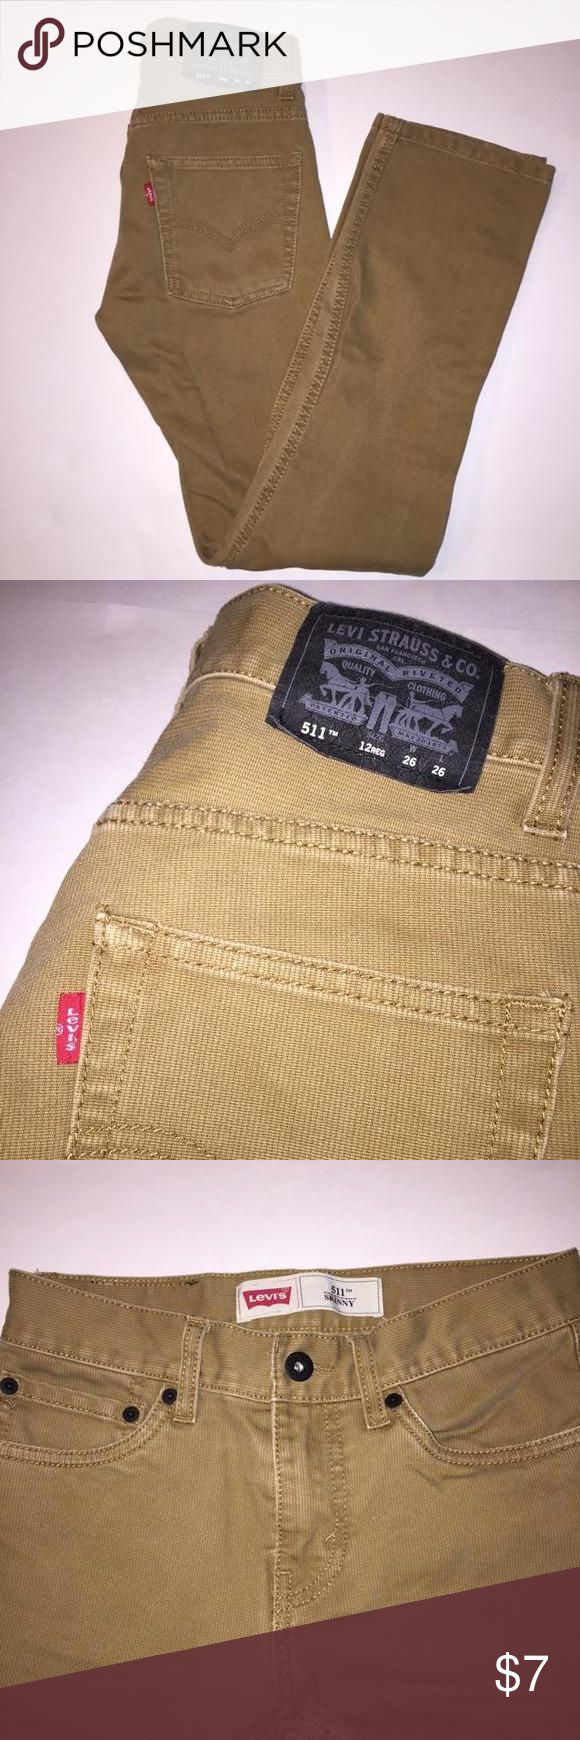 🎉🎉ON SALE🎉🎉 Levi's 511 Boys Skinny Jeans These were only worn 2 or so times! Very unique. Tan color. There is a small black dot just under the knee with minor discoloration around it. Check last picture for details. Levi's Shirts & Tops